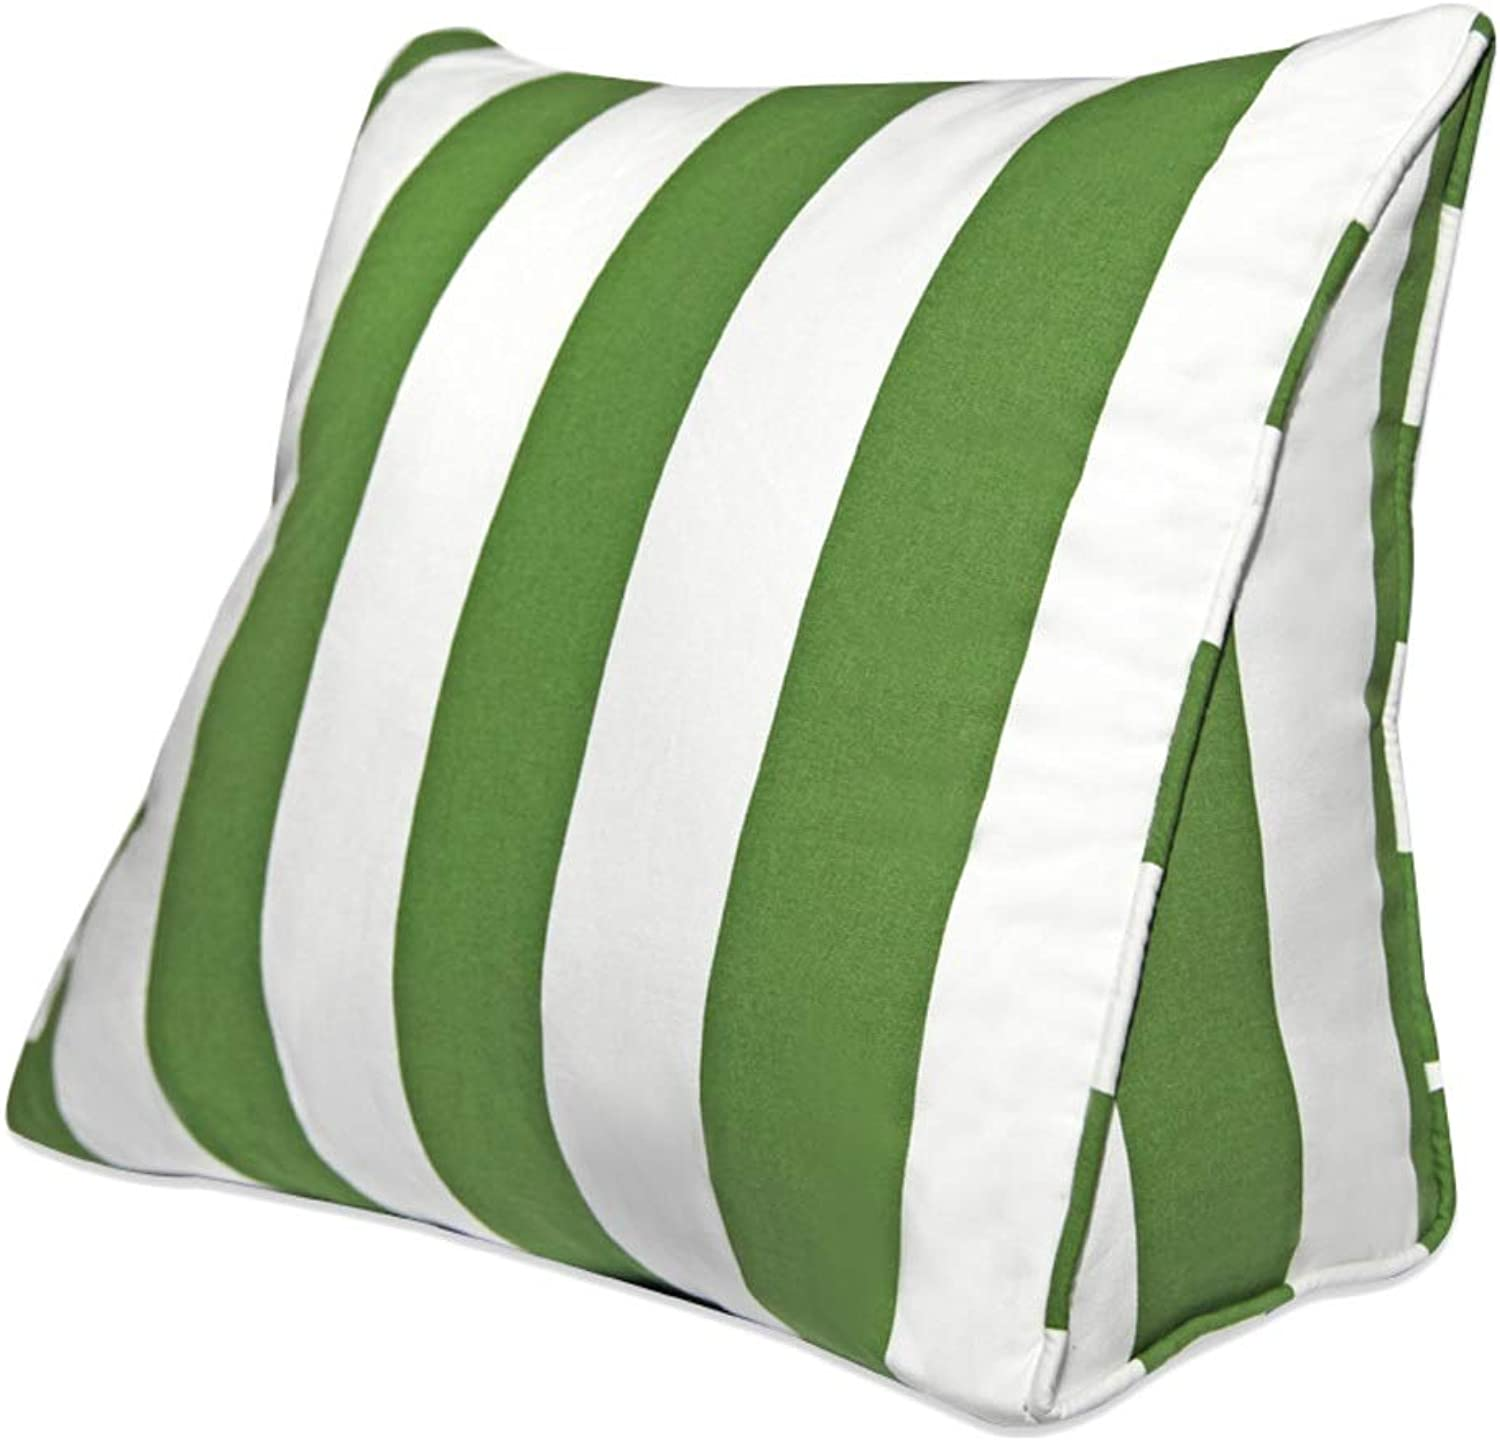 Triangle pad backrest pad Cotton Pillow Sofa Bed Office Chair Rest cushion (color   Green White, Size   L)